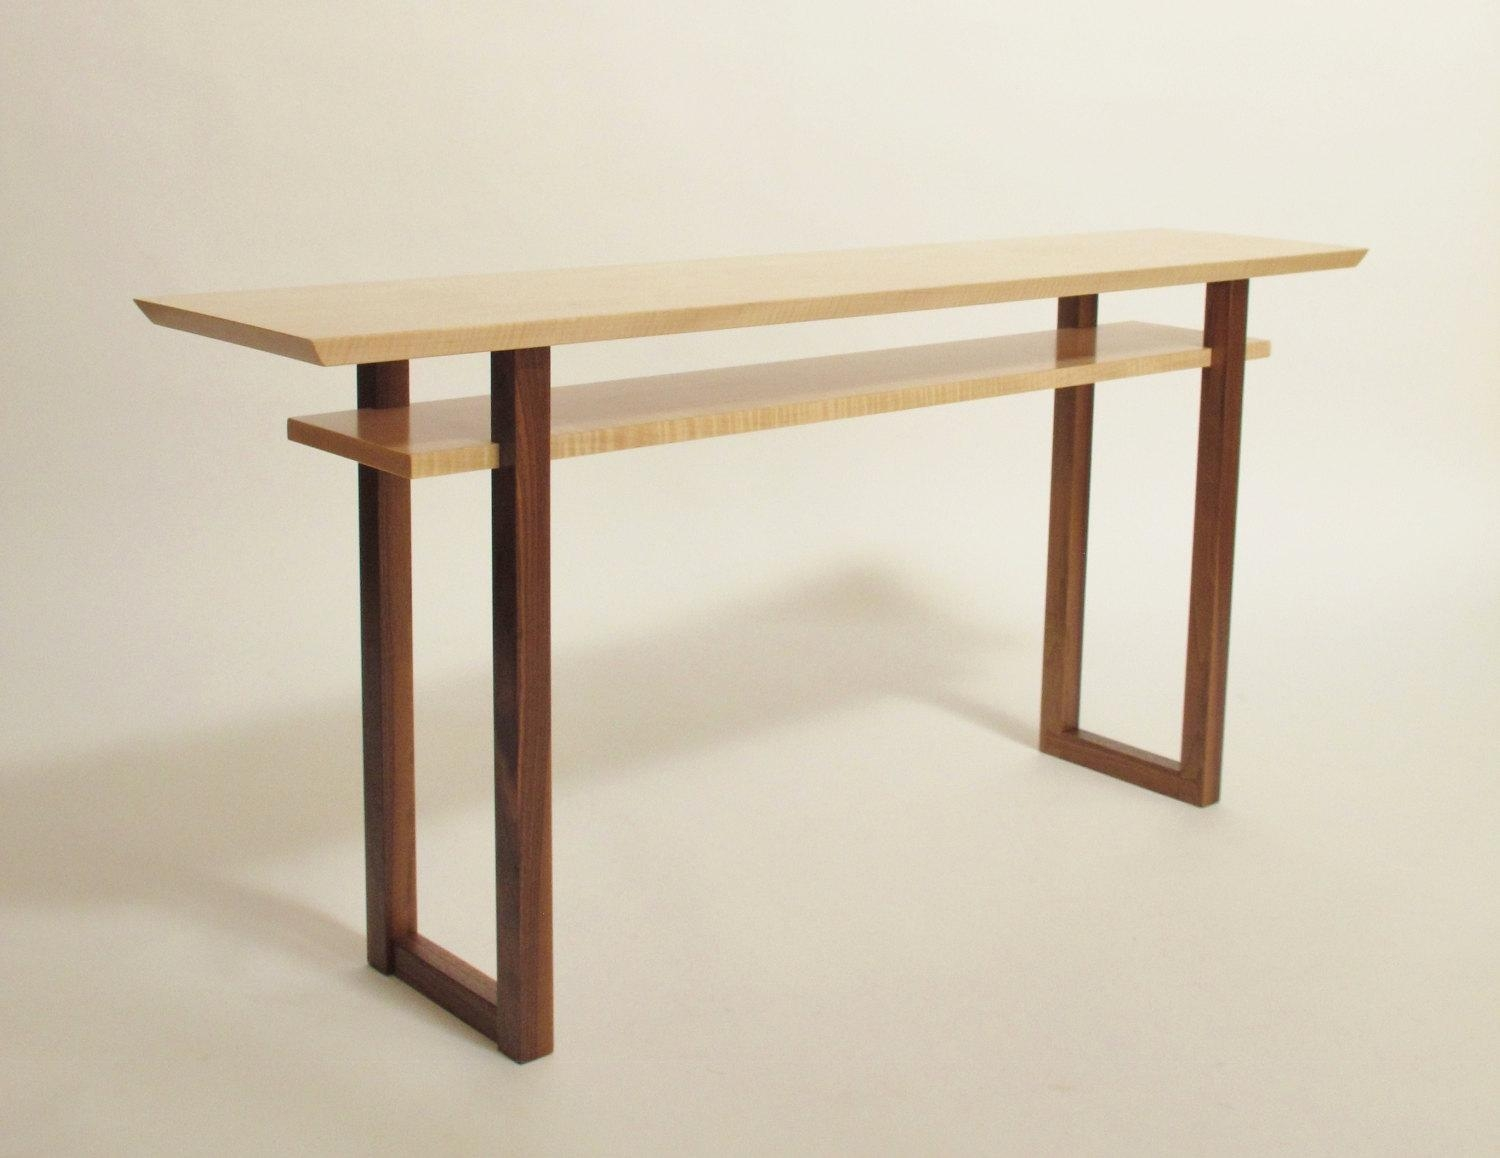 Contemporary Long Low Console Table: Narrow Sofa Table Mid Within Low Sofa Tables (View 2 of 20)